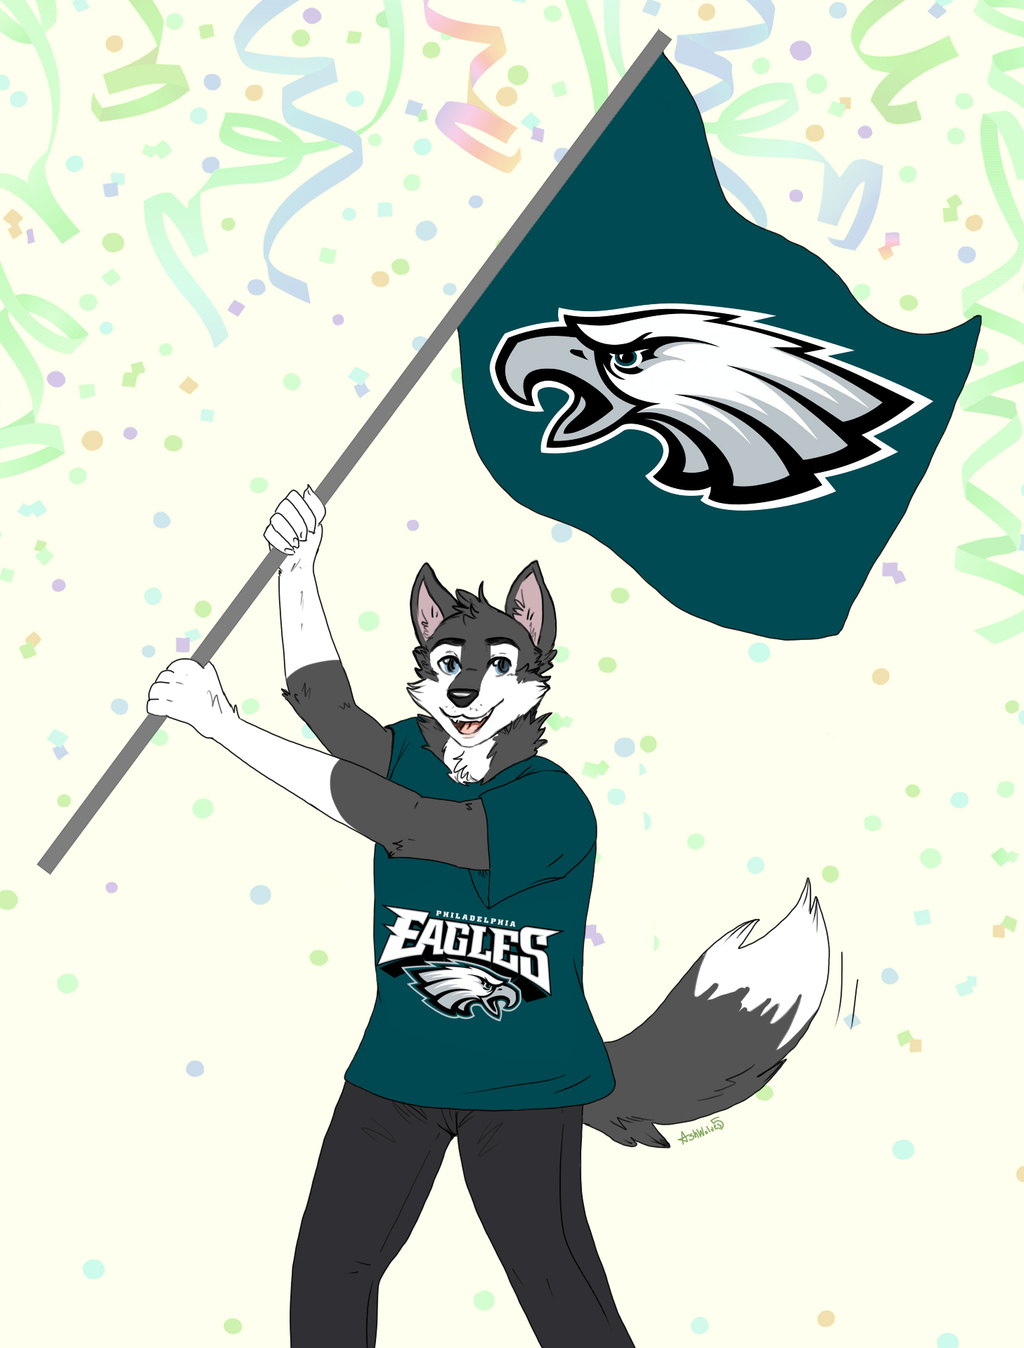 Most recent image: Furrydelphia cheer for the Eagles!